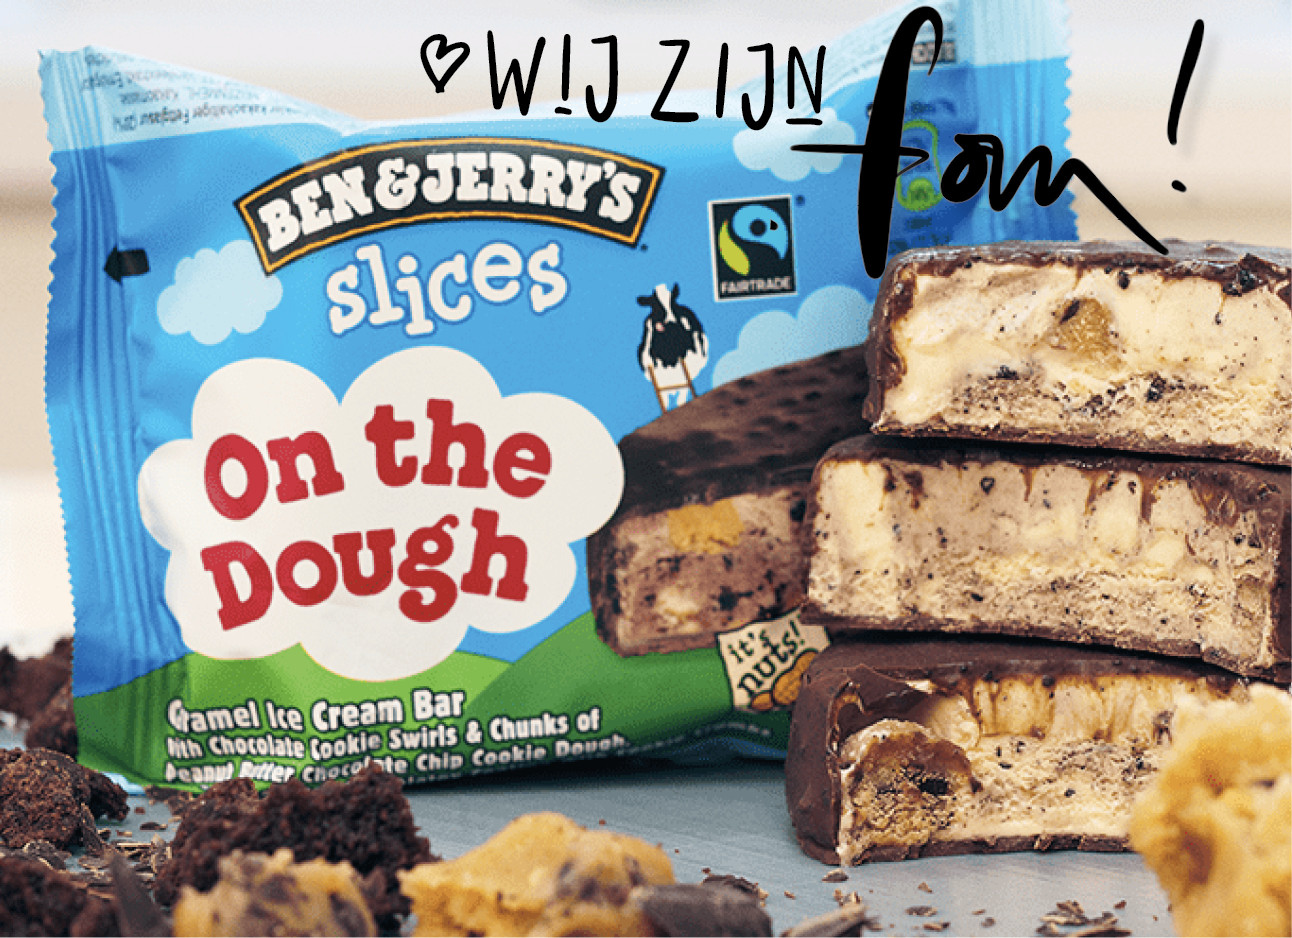 new ben & jerry's slices on the dought peanutbutter cookie dough icecream wij zijn fan